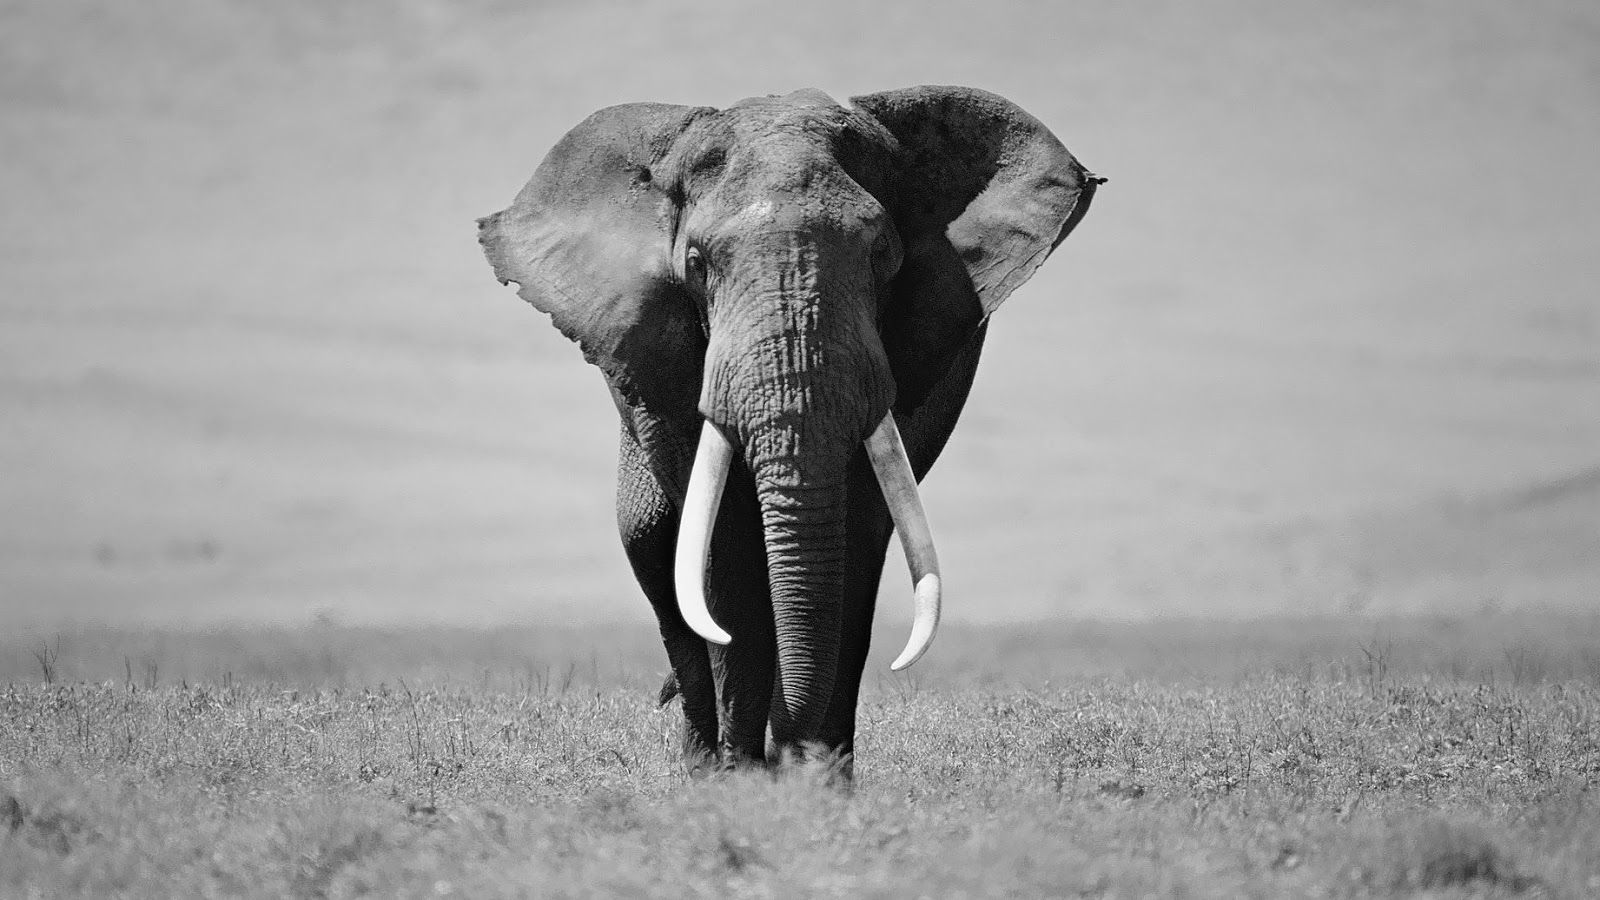 Hd wallpaper black and white - Black And White Animal Photo Black And White Elephant Wallpaper Hd Animal Background Photo